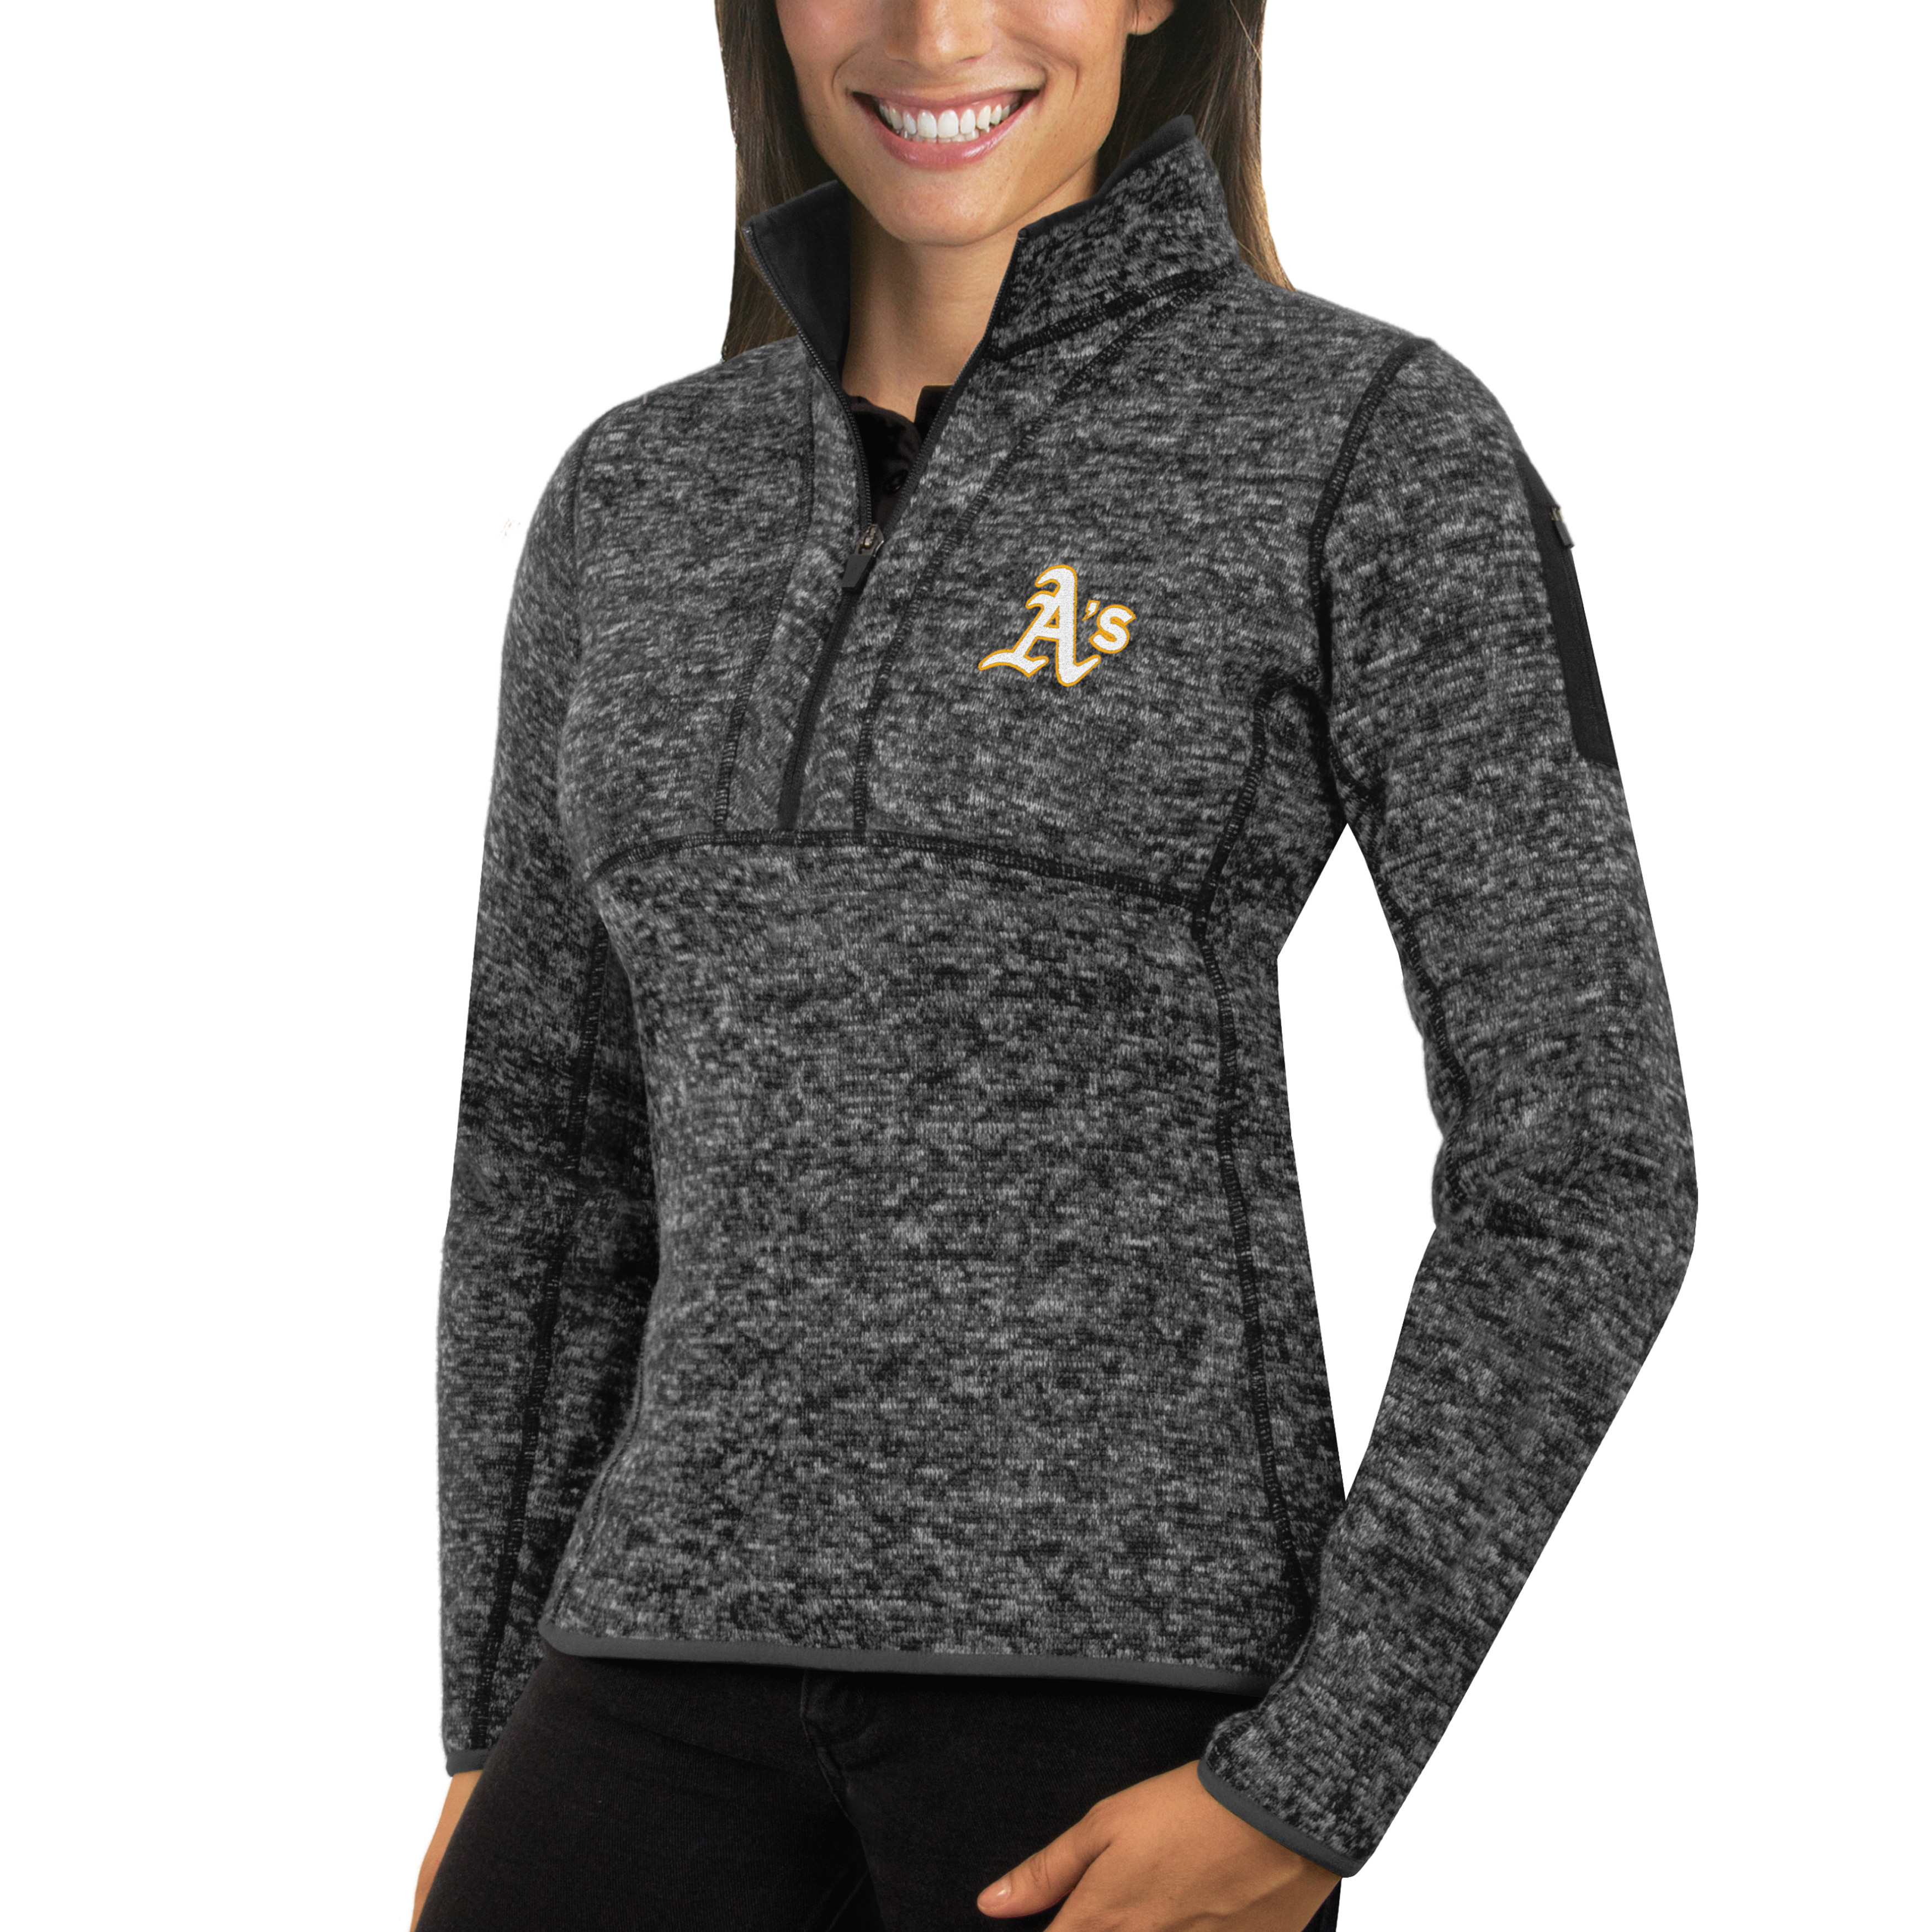 Oakland Athletics Antigua Women's Fortune Half-Zip Pullover Sweater - Heathered Charcoal